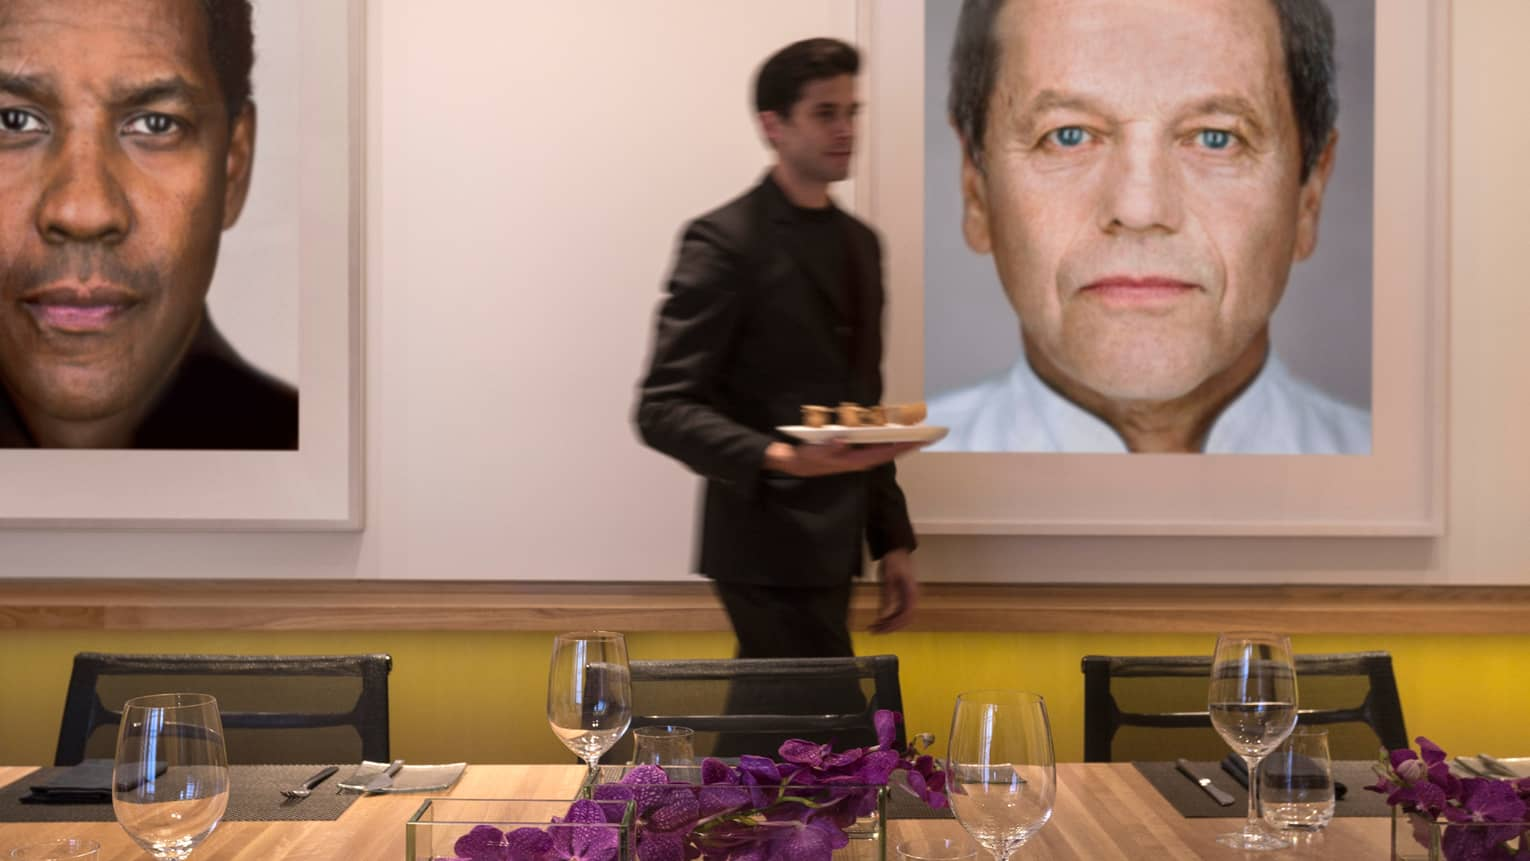 Server carries tray past Cut table, framed prints of Hollywood stars